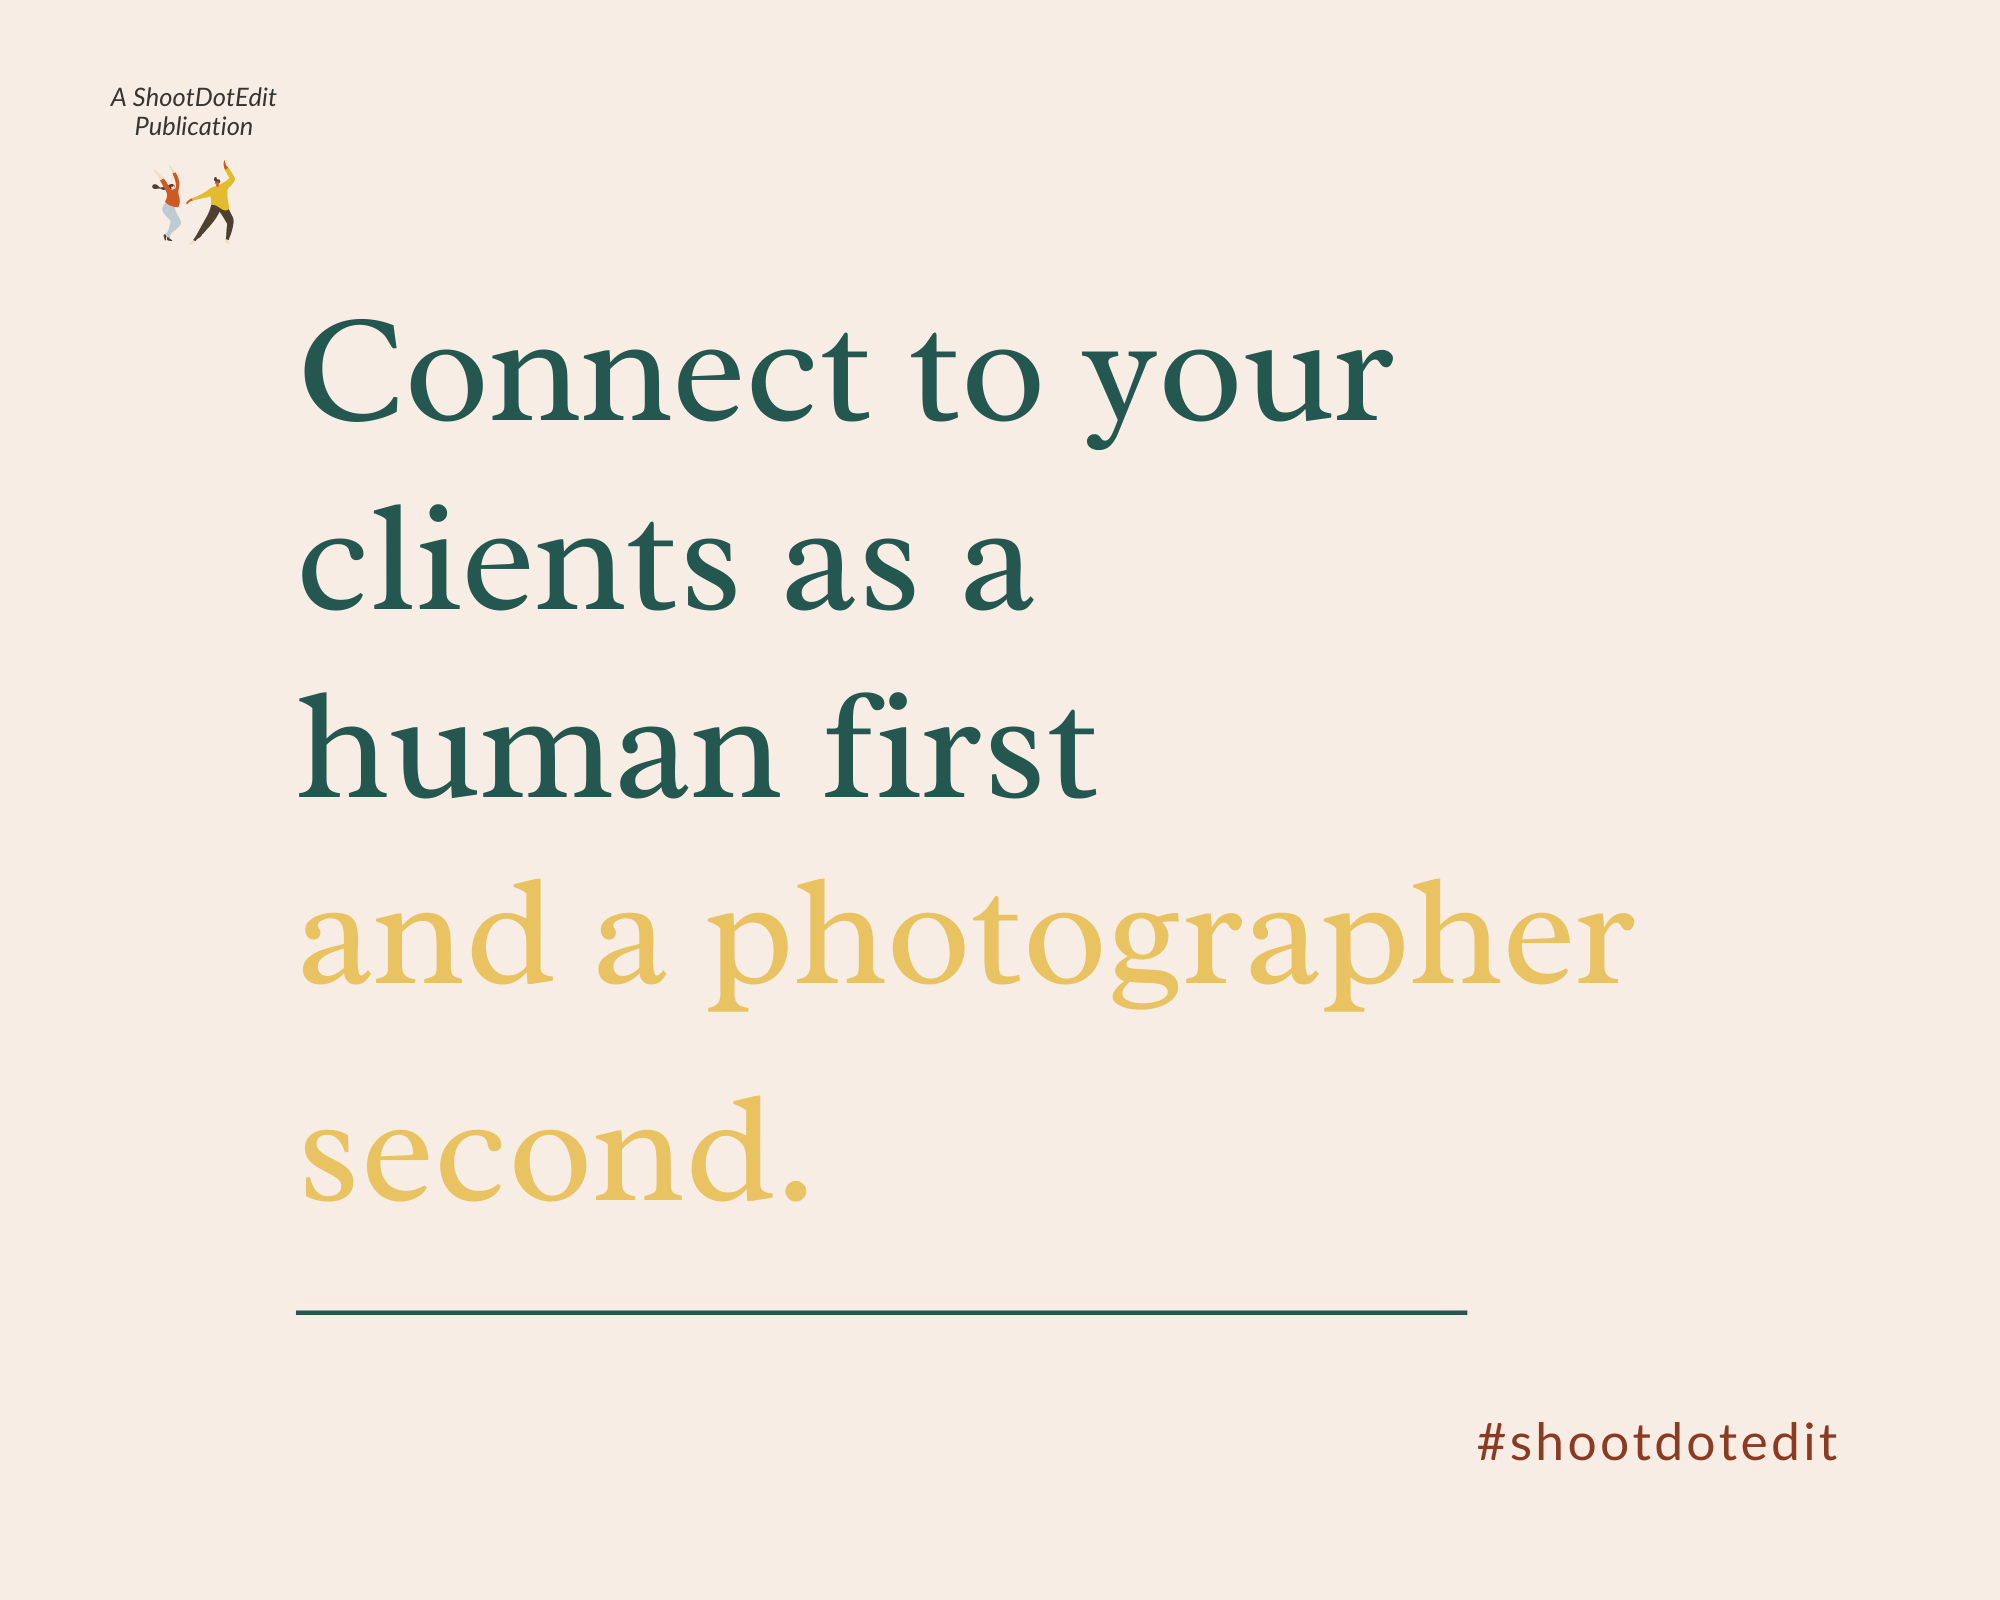 Infographic stating connect to your clients as a human first and a photographer second